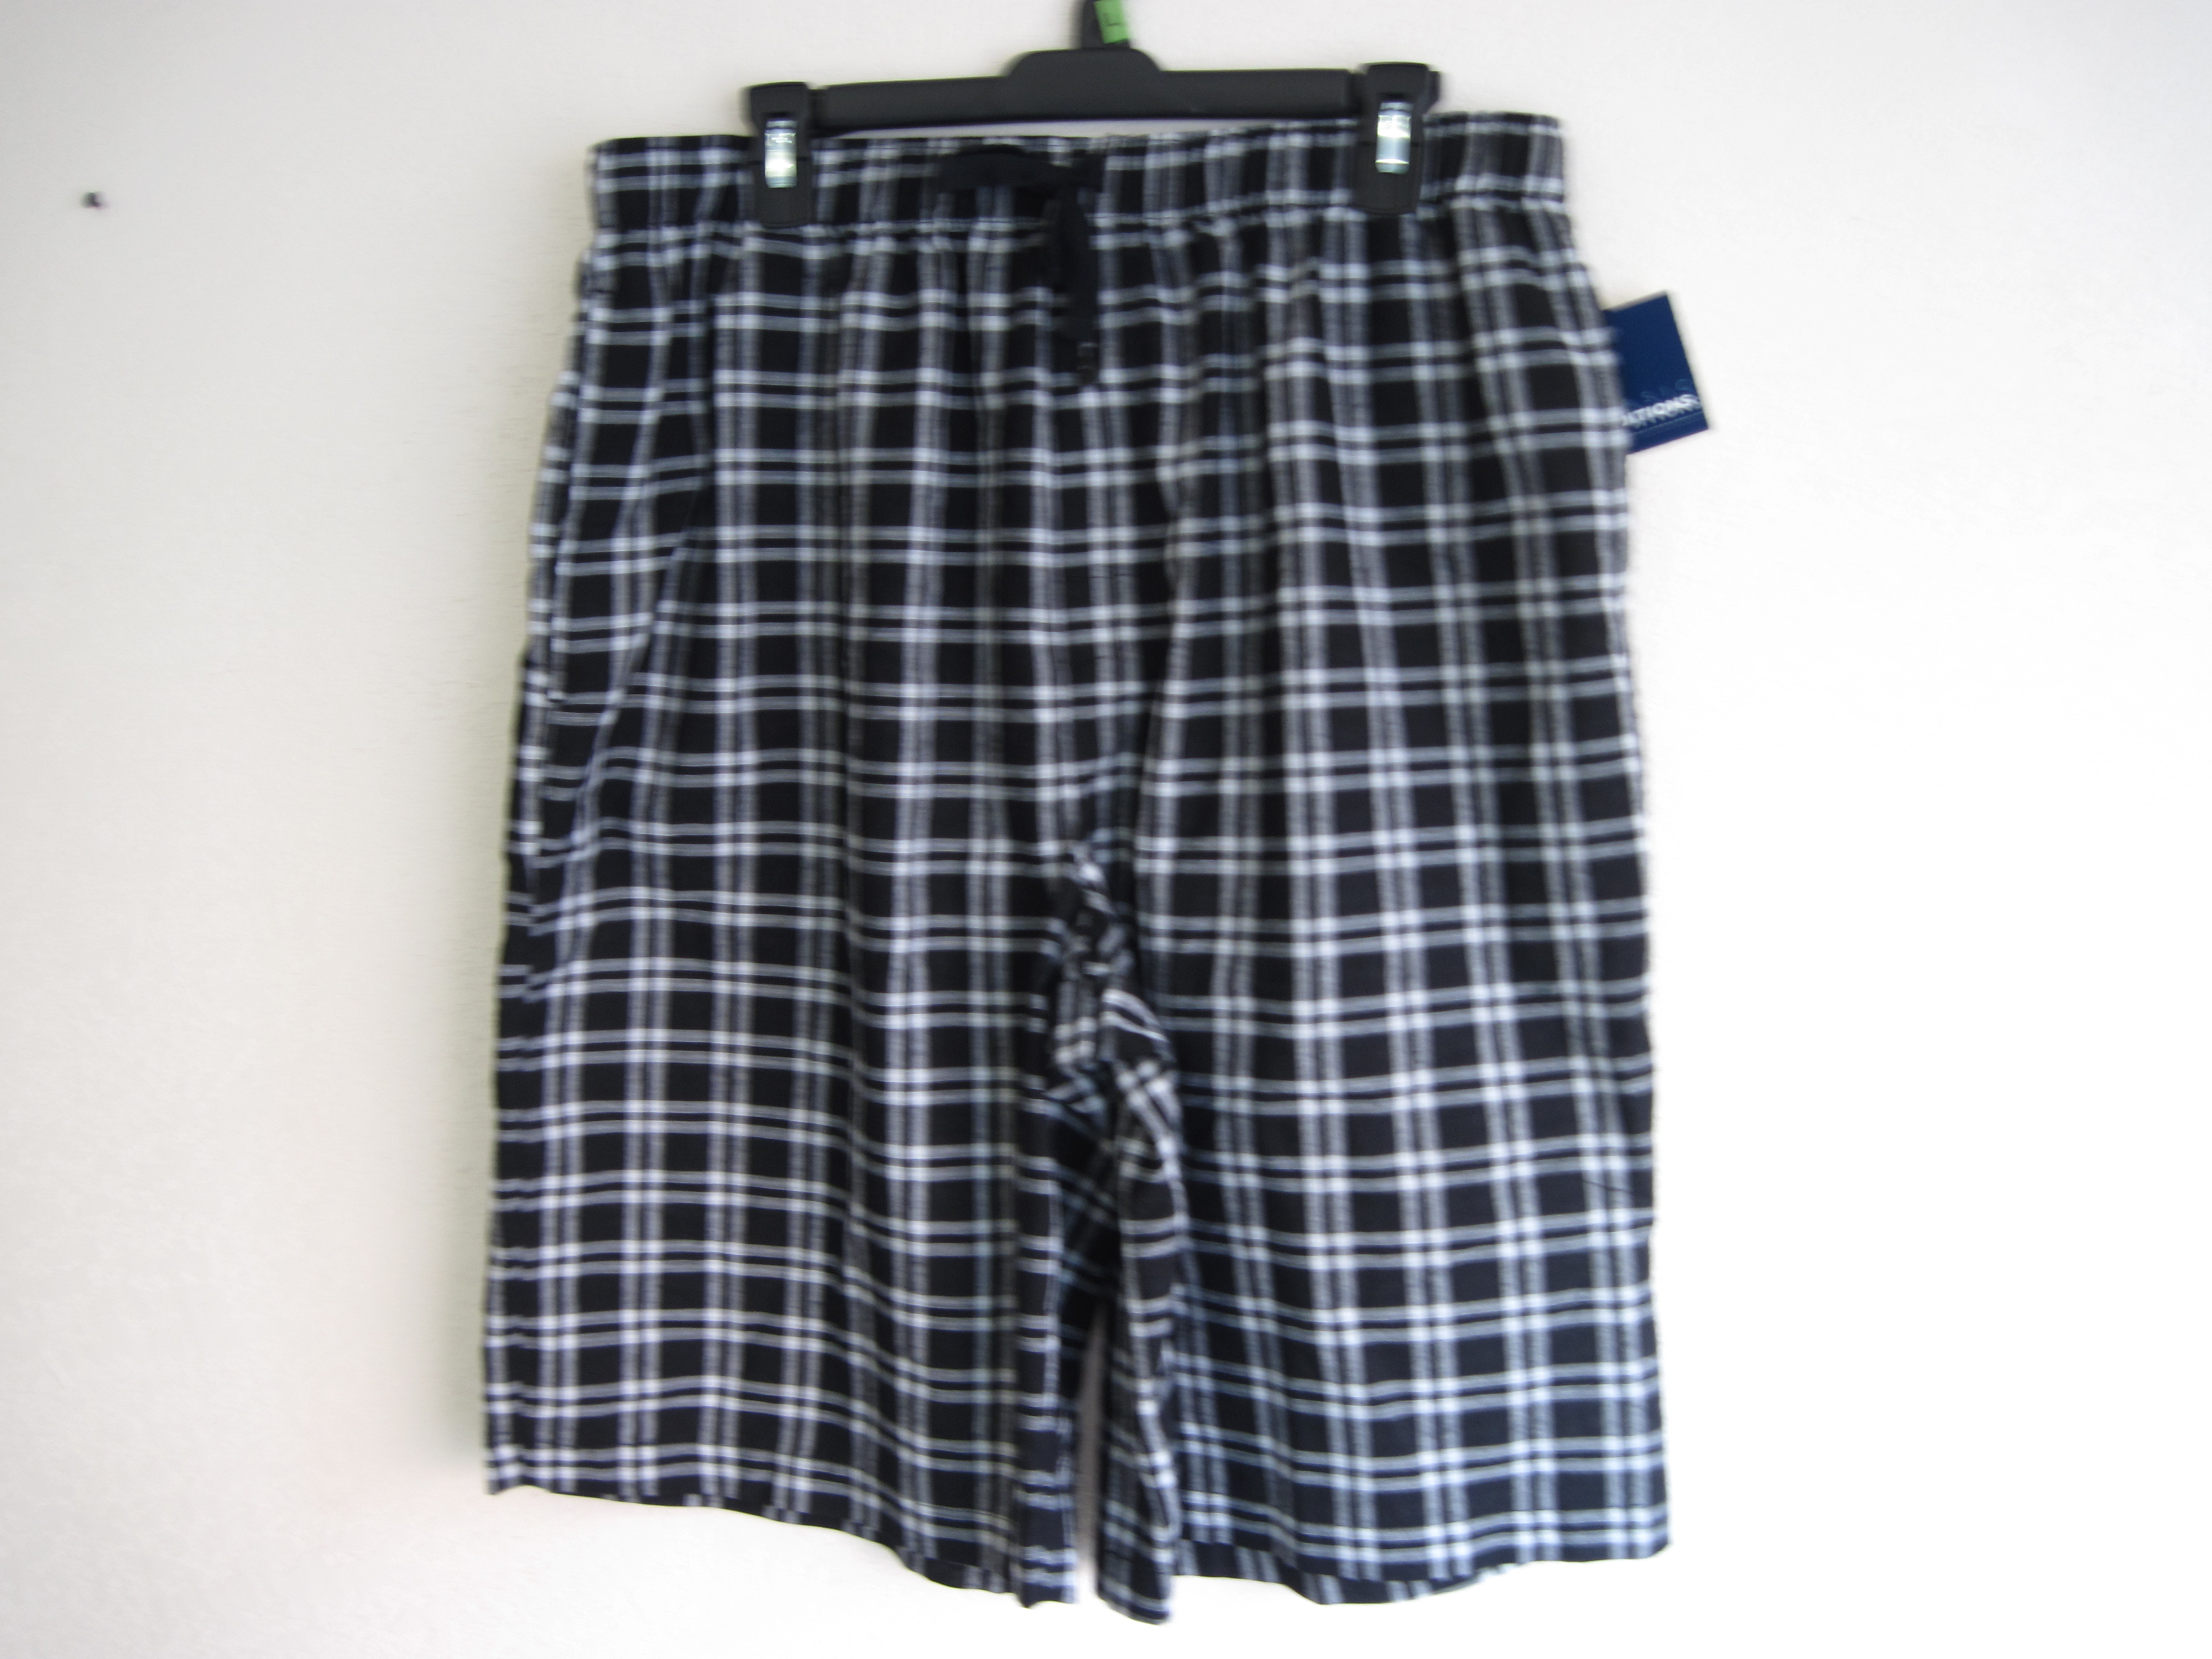 Basic Editions Sz Lg Mens Sleep Shorts (black & white squared)